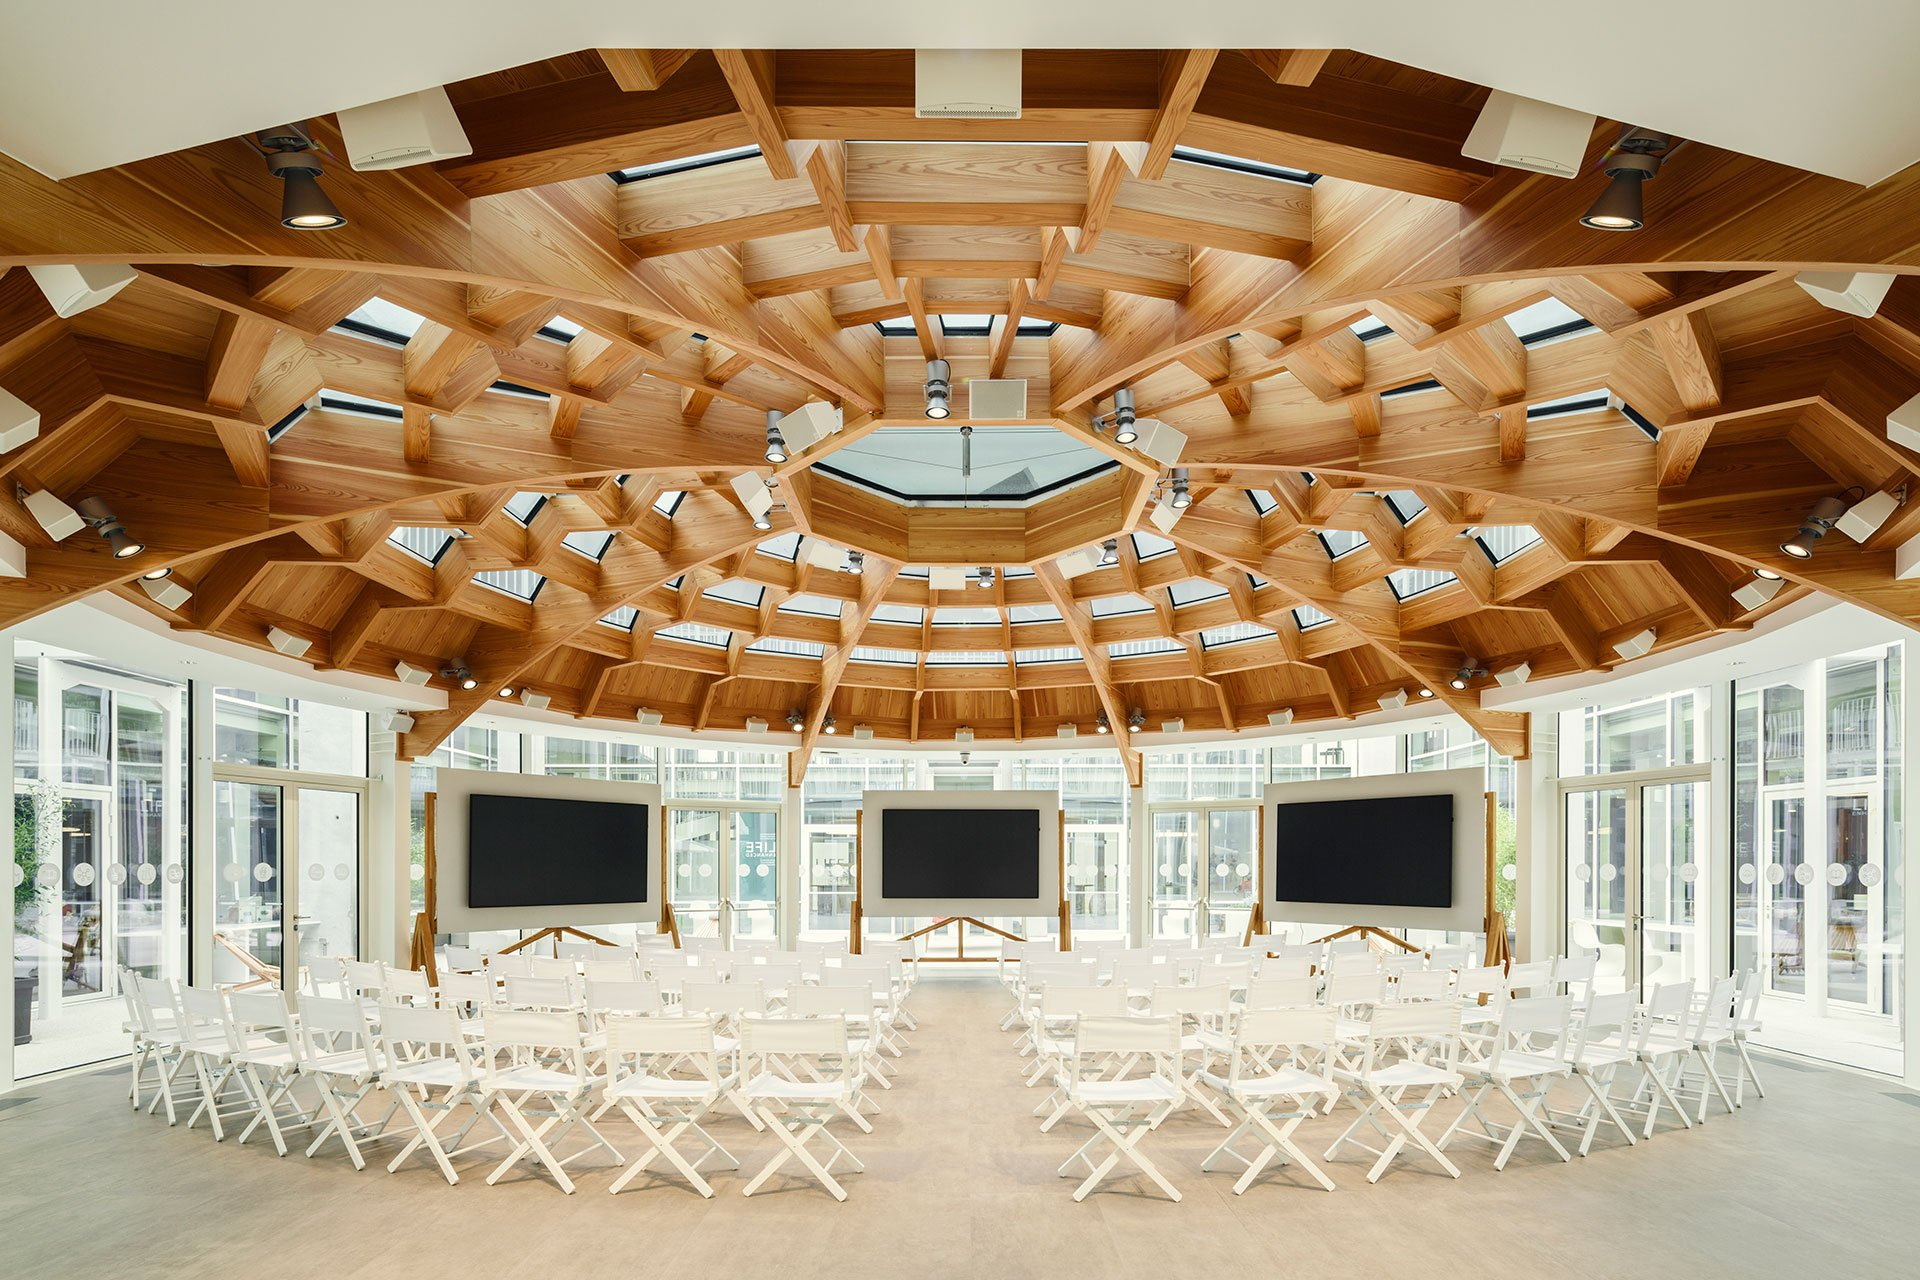 Open Lamp: a circular room for business meetings and presentations. Ph. Luca Rotondo